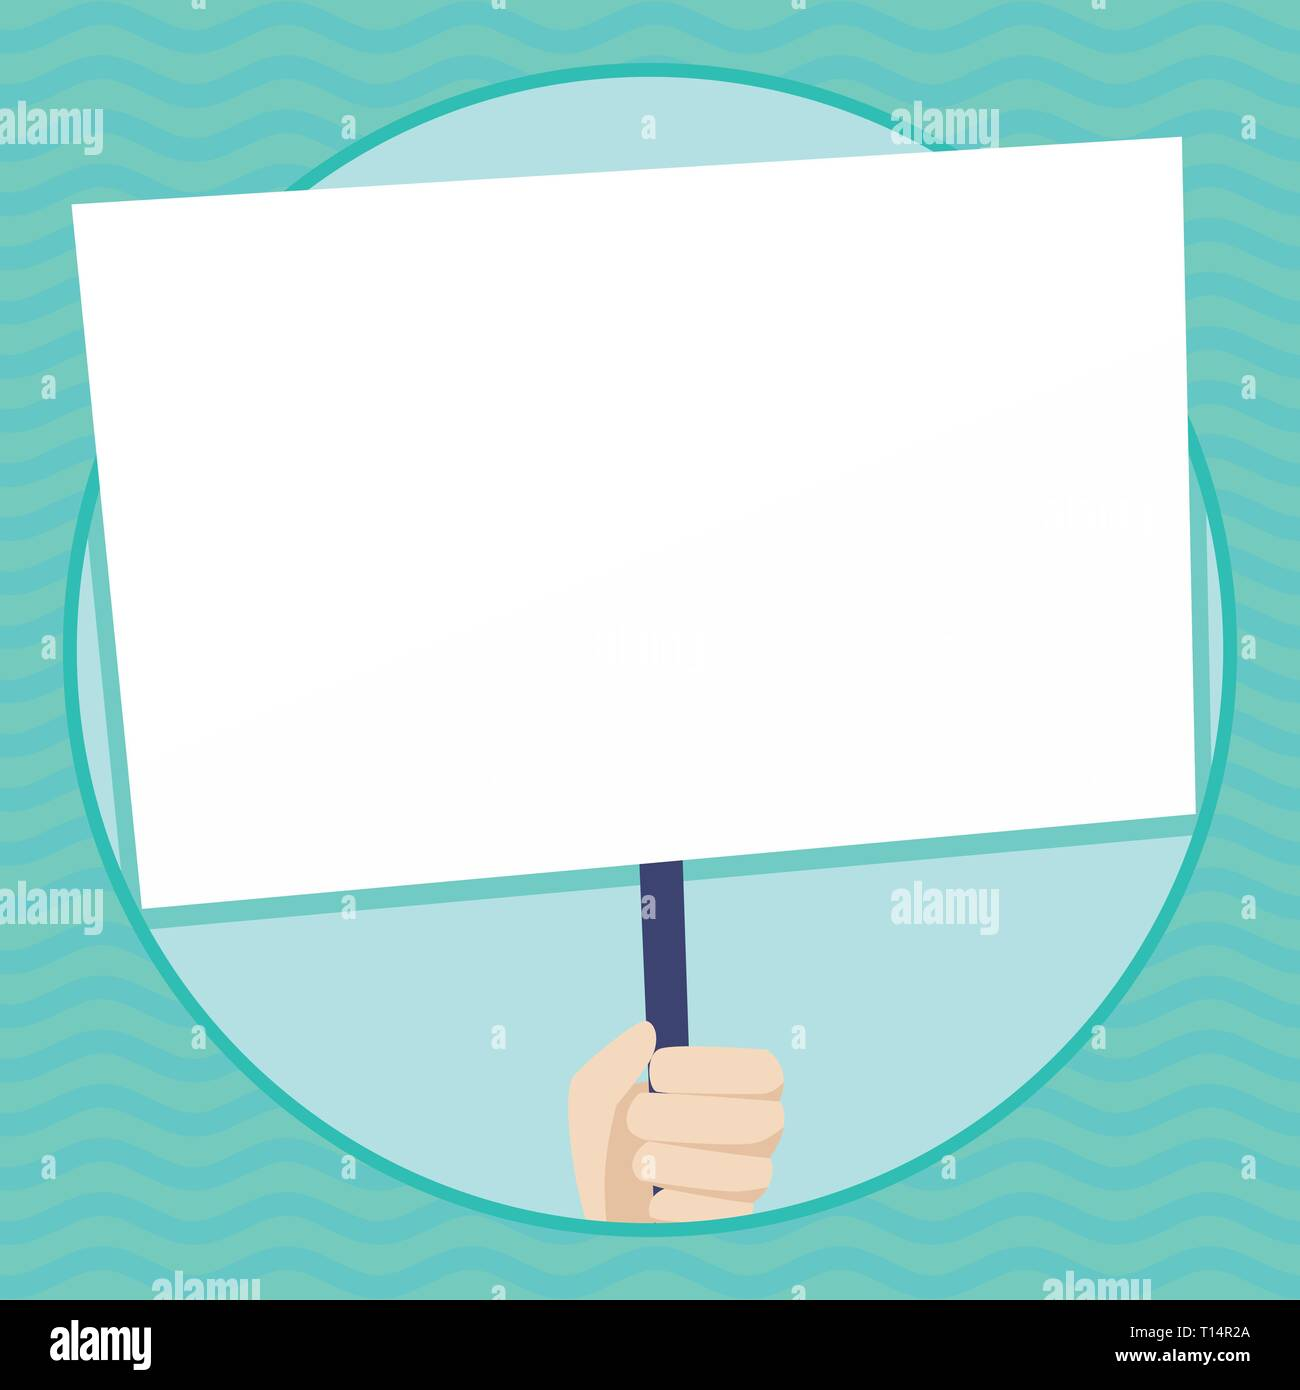 Hand Holding Blank White Placard Supported by Handle for Social Awareness Copy Space design Empty template text for Ad, promotion, poster, flyer, web  - Stock Vector